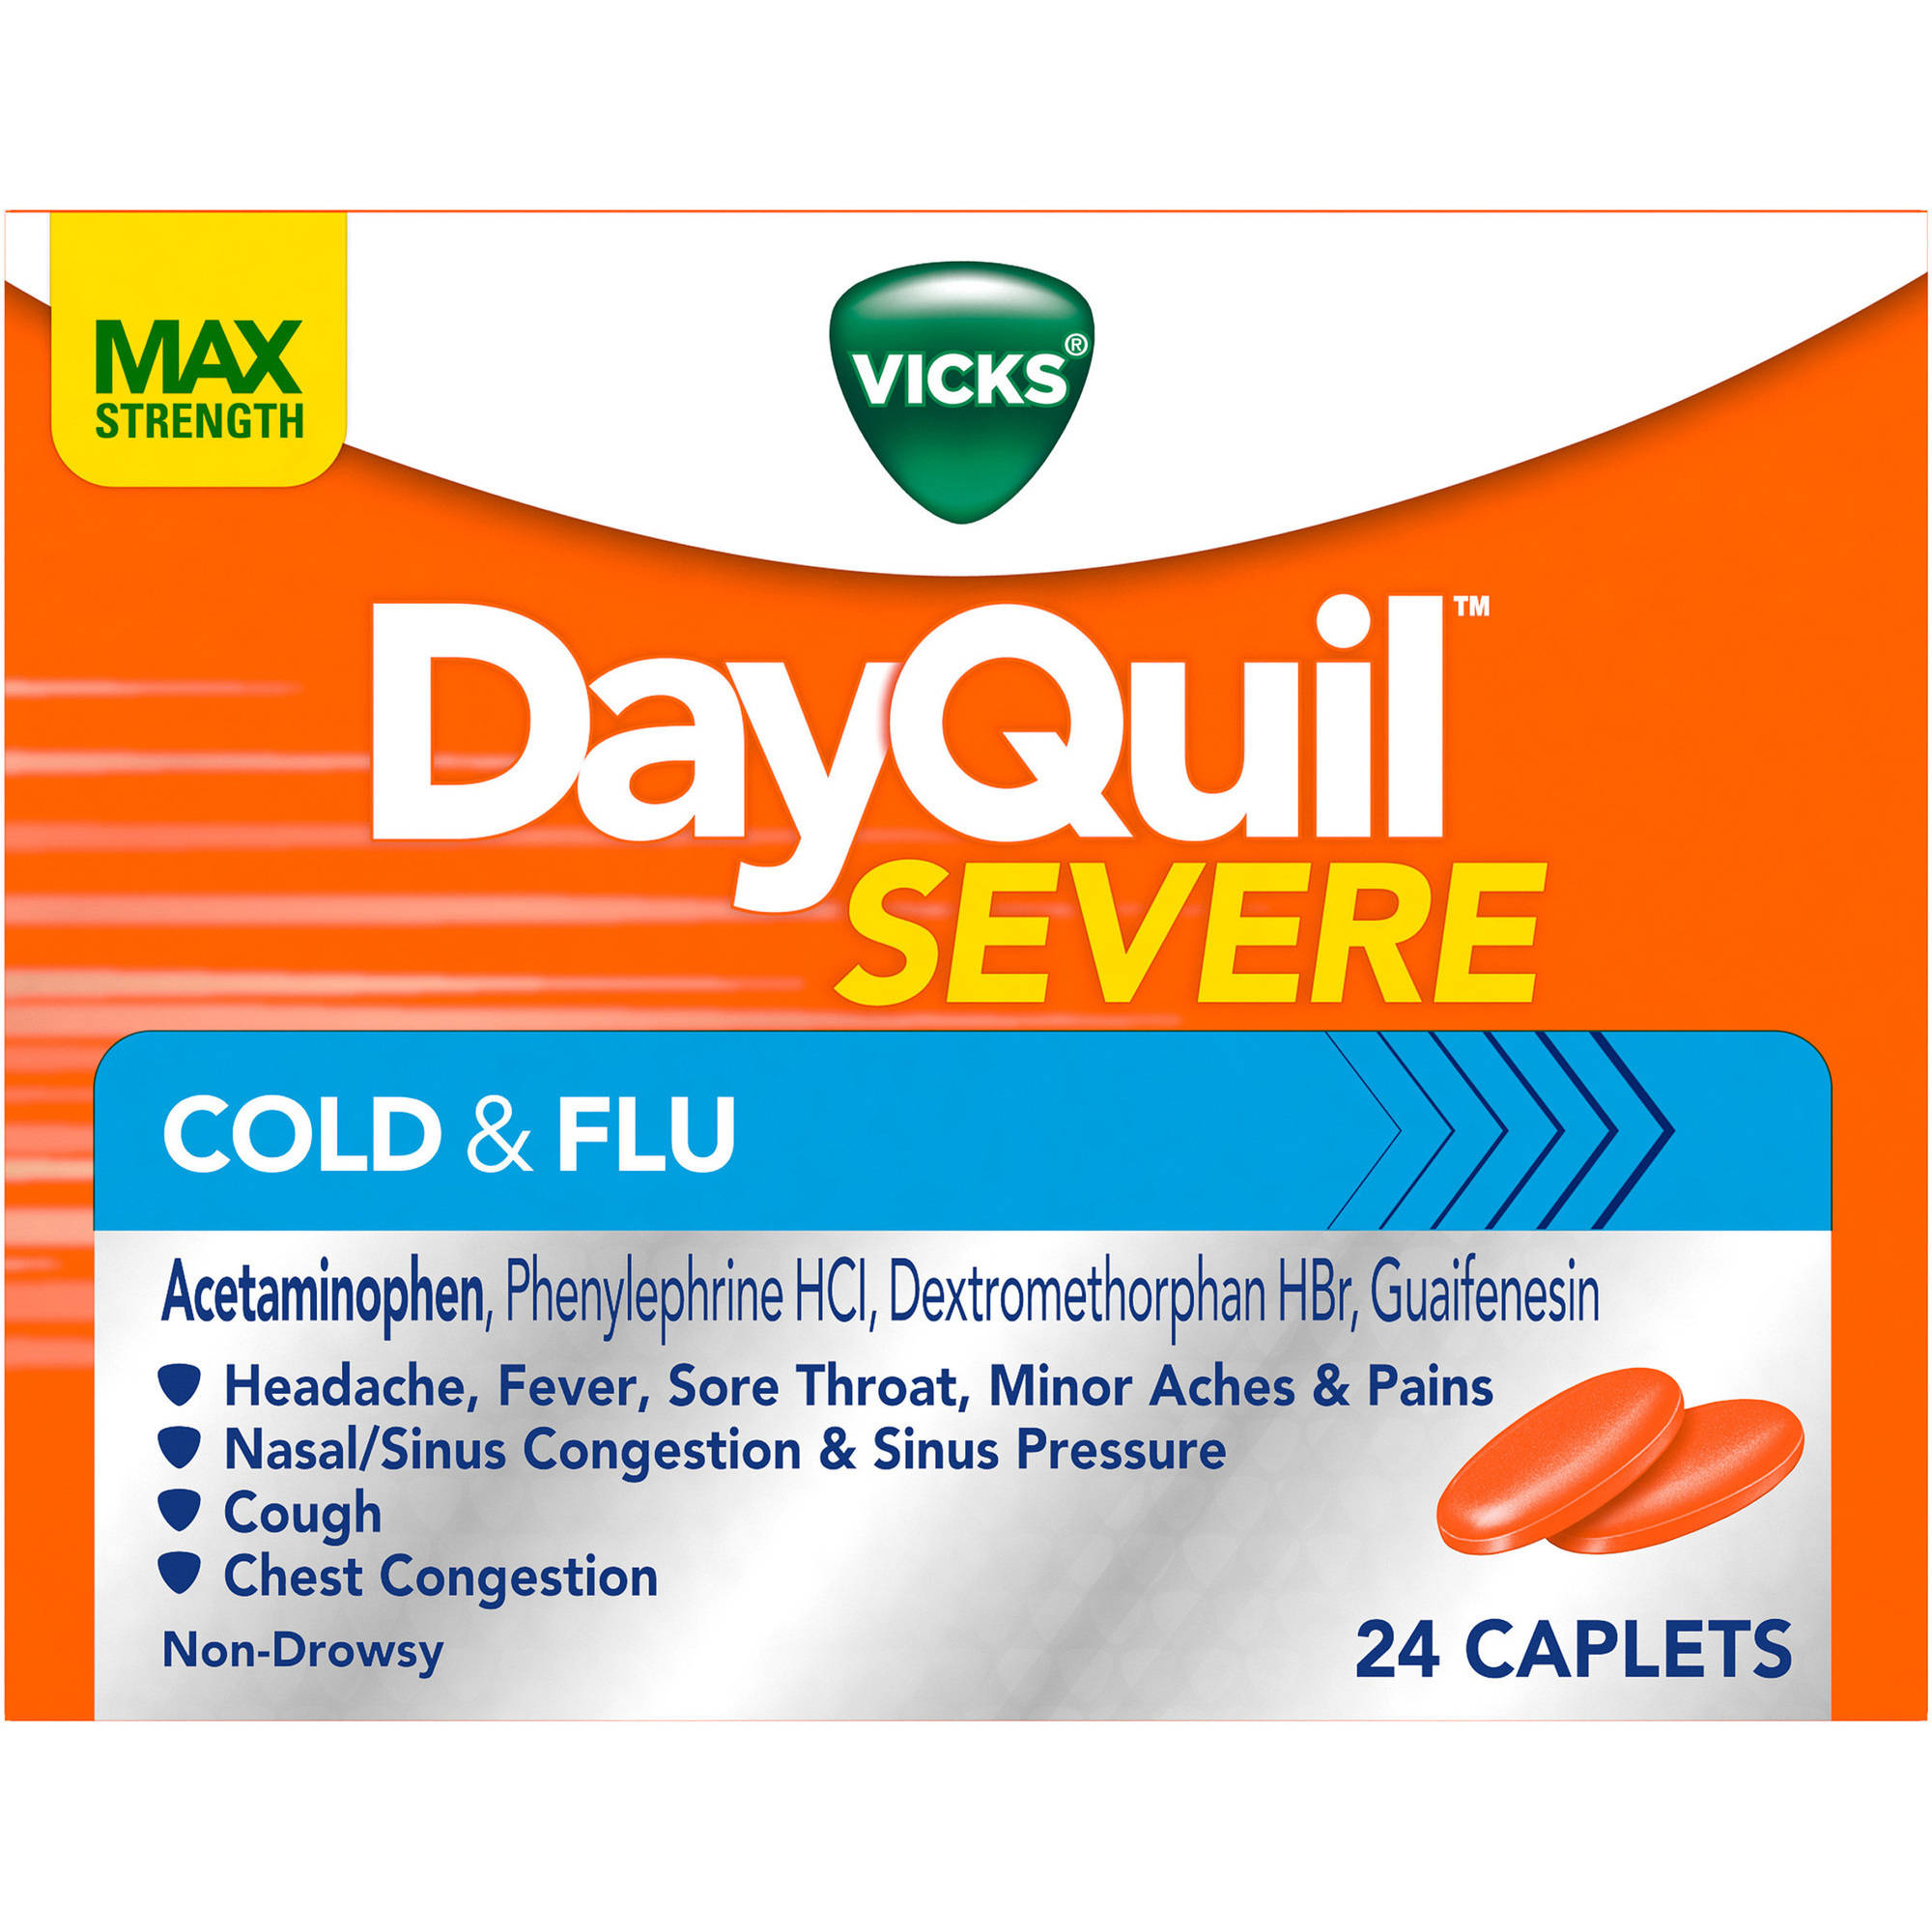 Vicks DayQuil Severe Cold & Flu Relief Caplets, 24 count